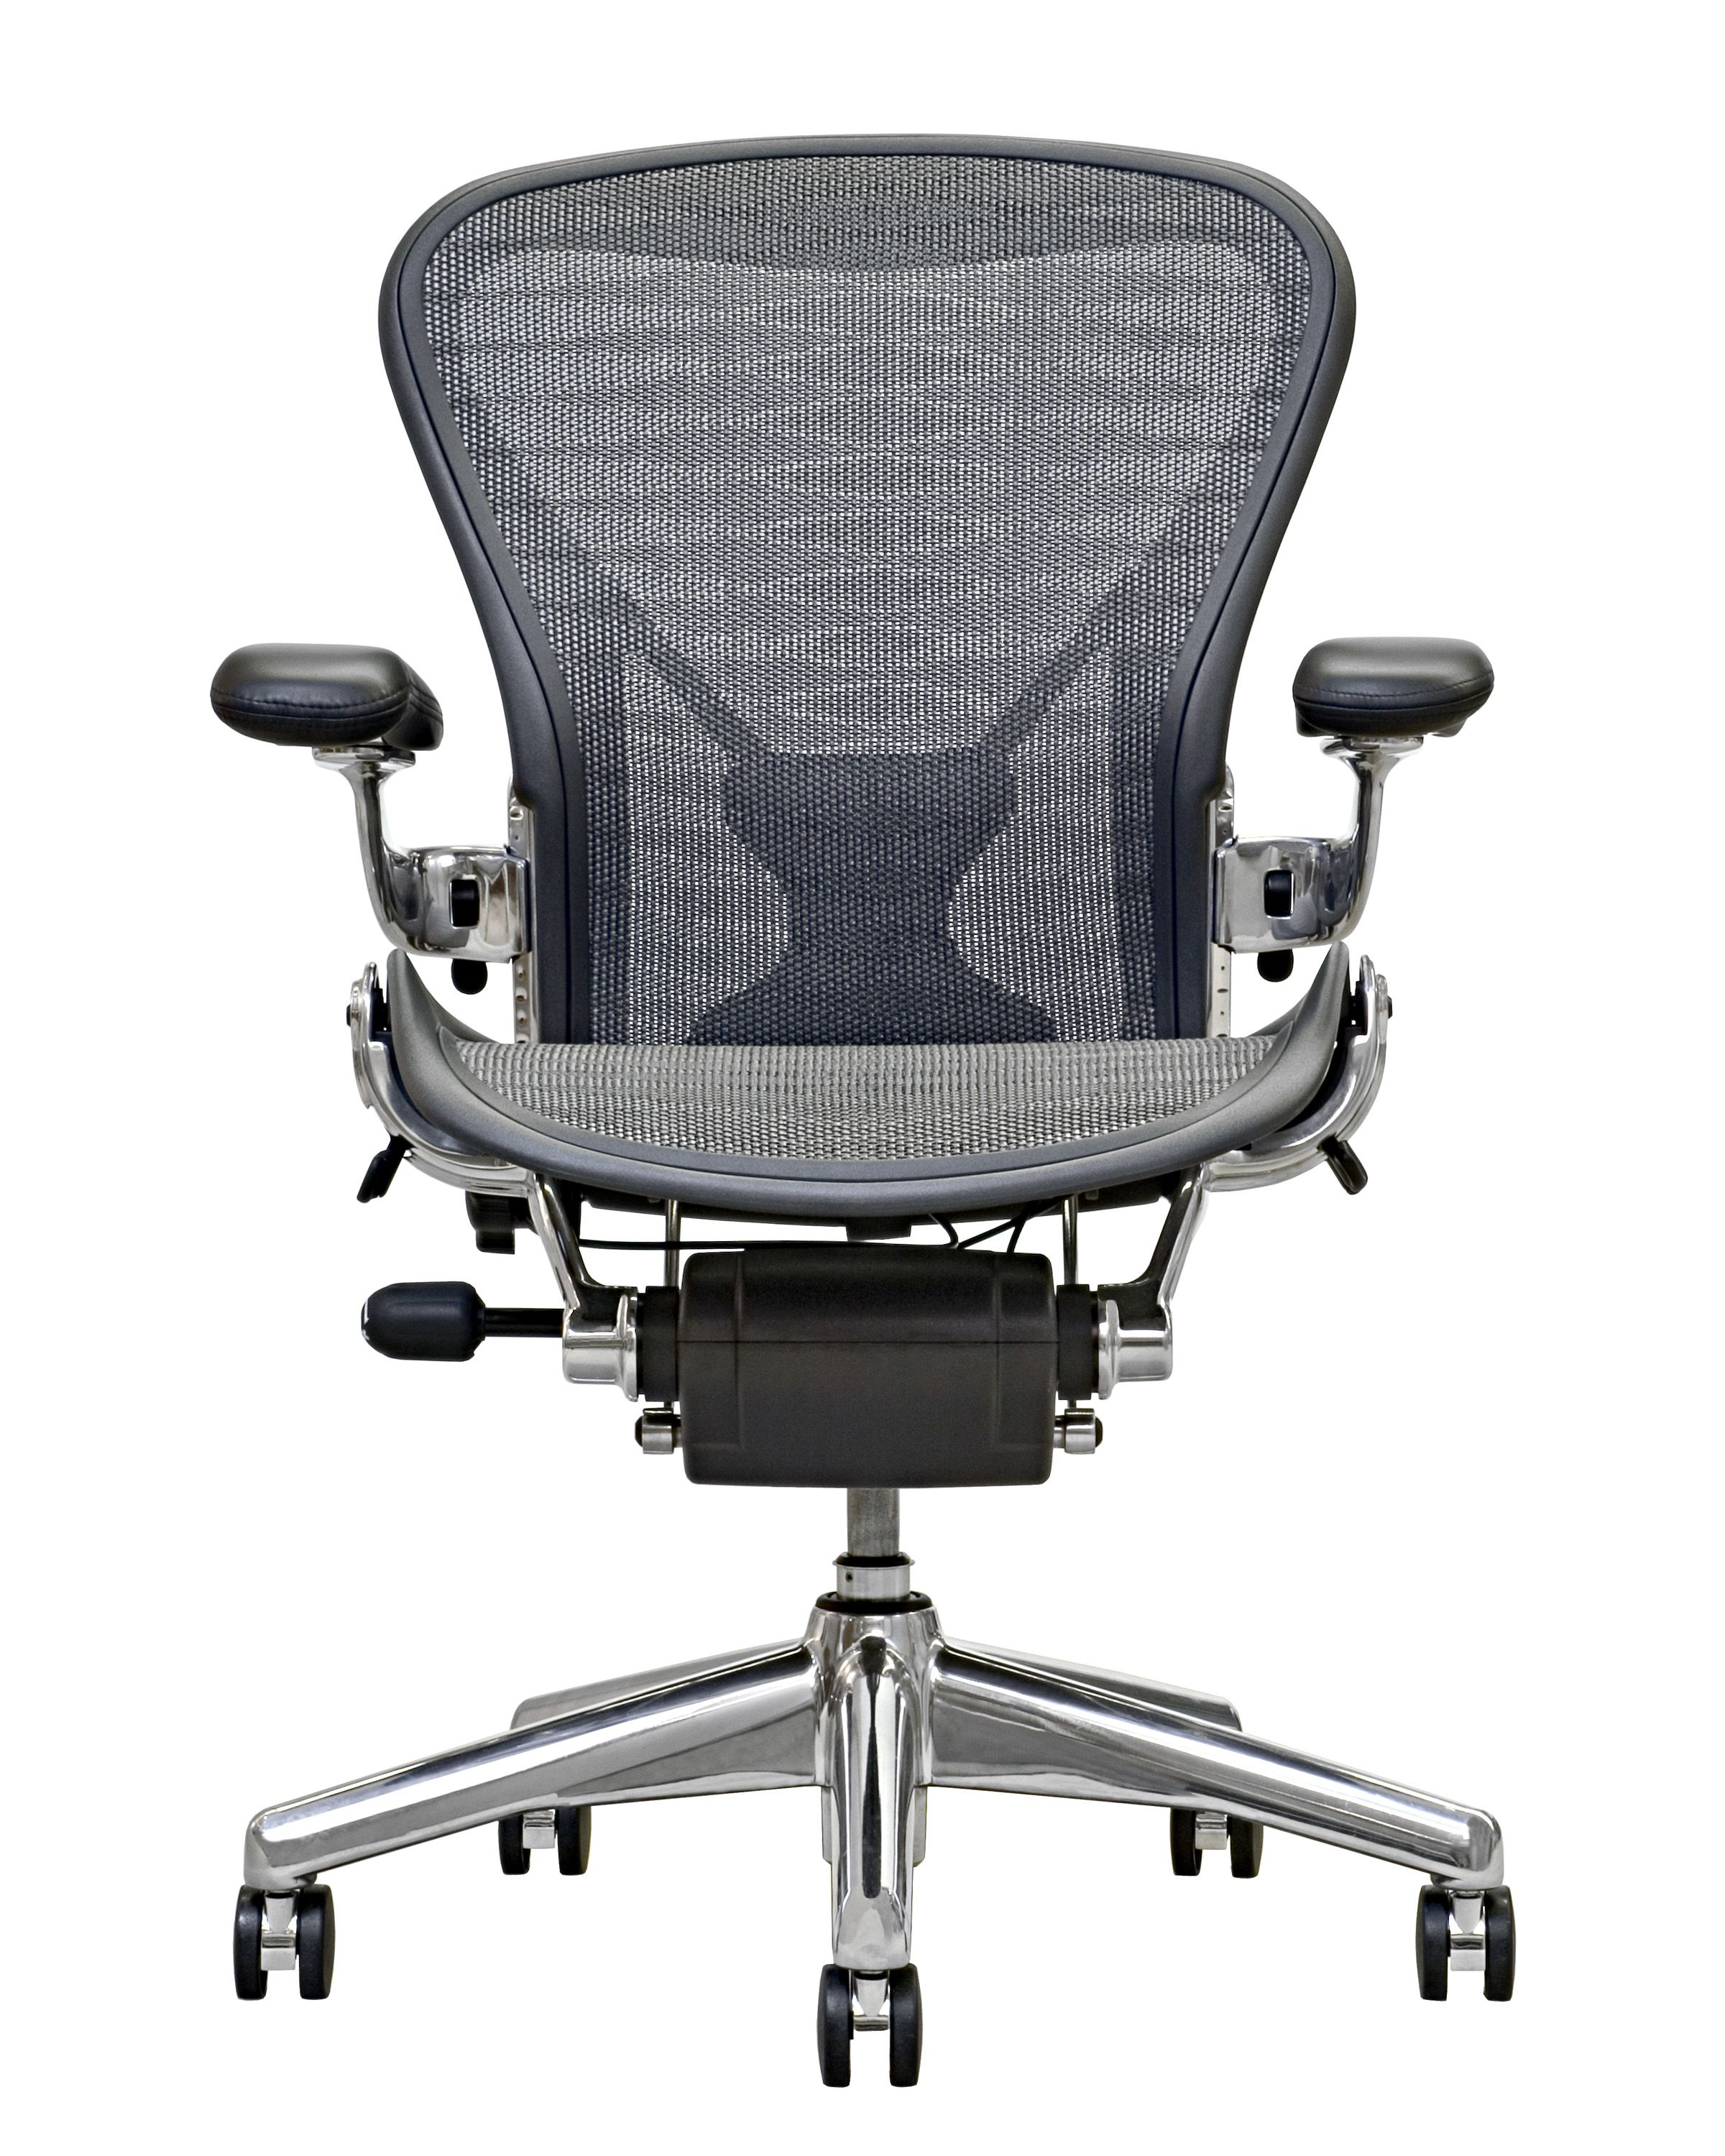 Herman Miller Aeron Chair, Designed By Bill Stumpf